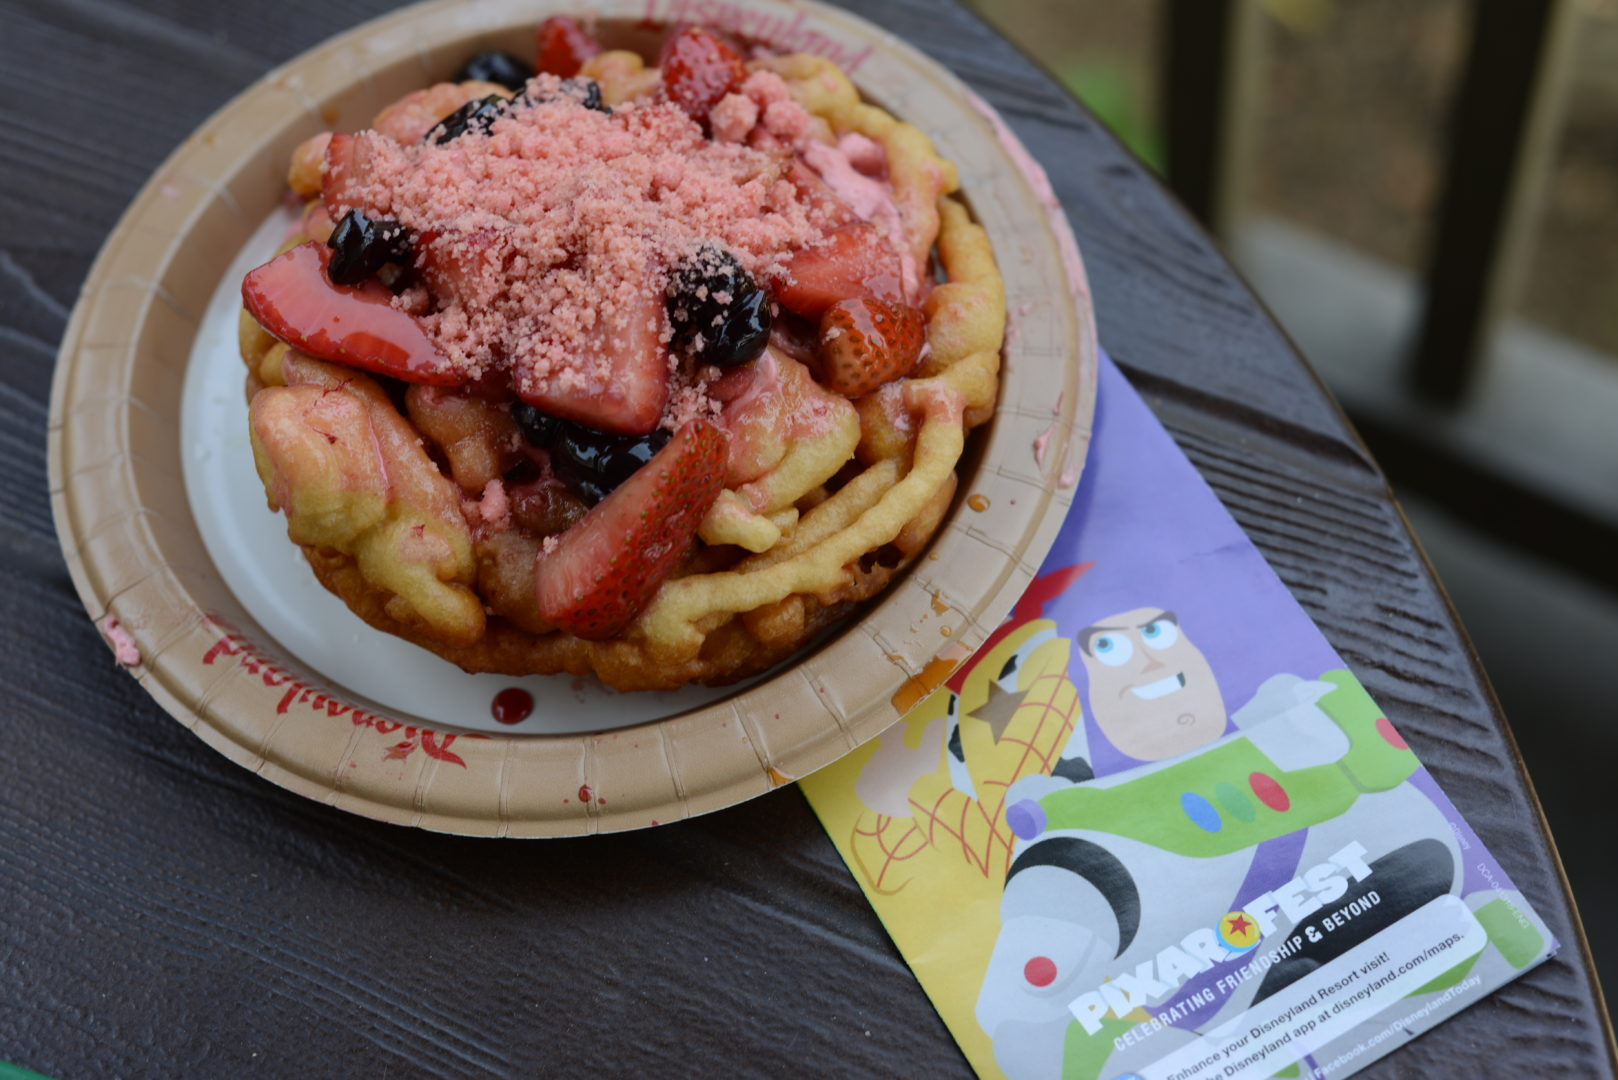 Lots-O Strawberry & Blueberry Funnel Cake with a Disneyland/Pixar Fest Park Map